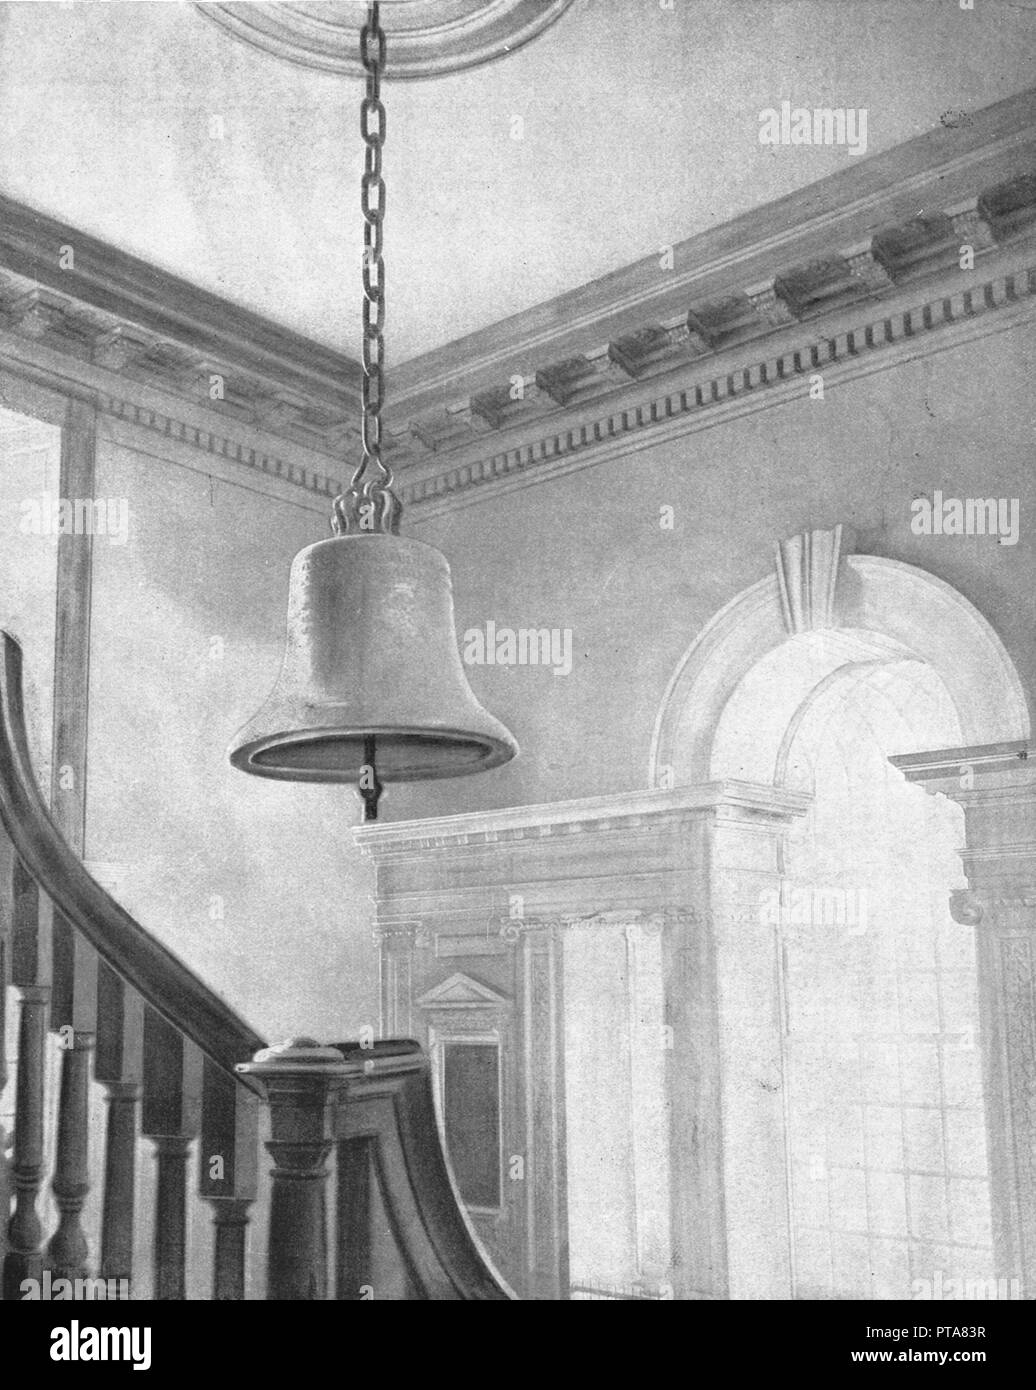 Liberty Bell, Independence Hall, Philadelphia, USA, c1900. Bell associated with the vote for American Independence, and later adopted as a symbol by abolitionist societies in the 1830s, who dubbed it the 'Liberty Bell'. From Scenic Marvels of the New World edited by Prof. Geo.R. Cromwell. [C.N.Greig & Co., c1900] Stock Photo